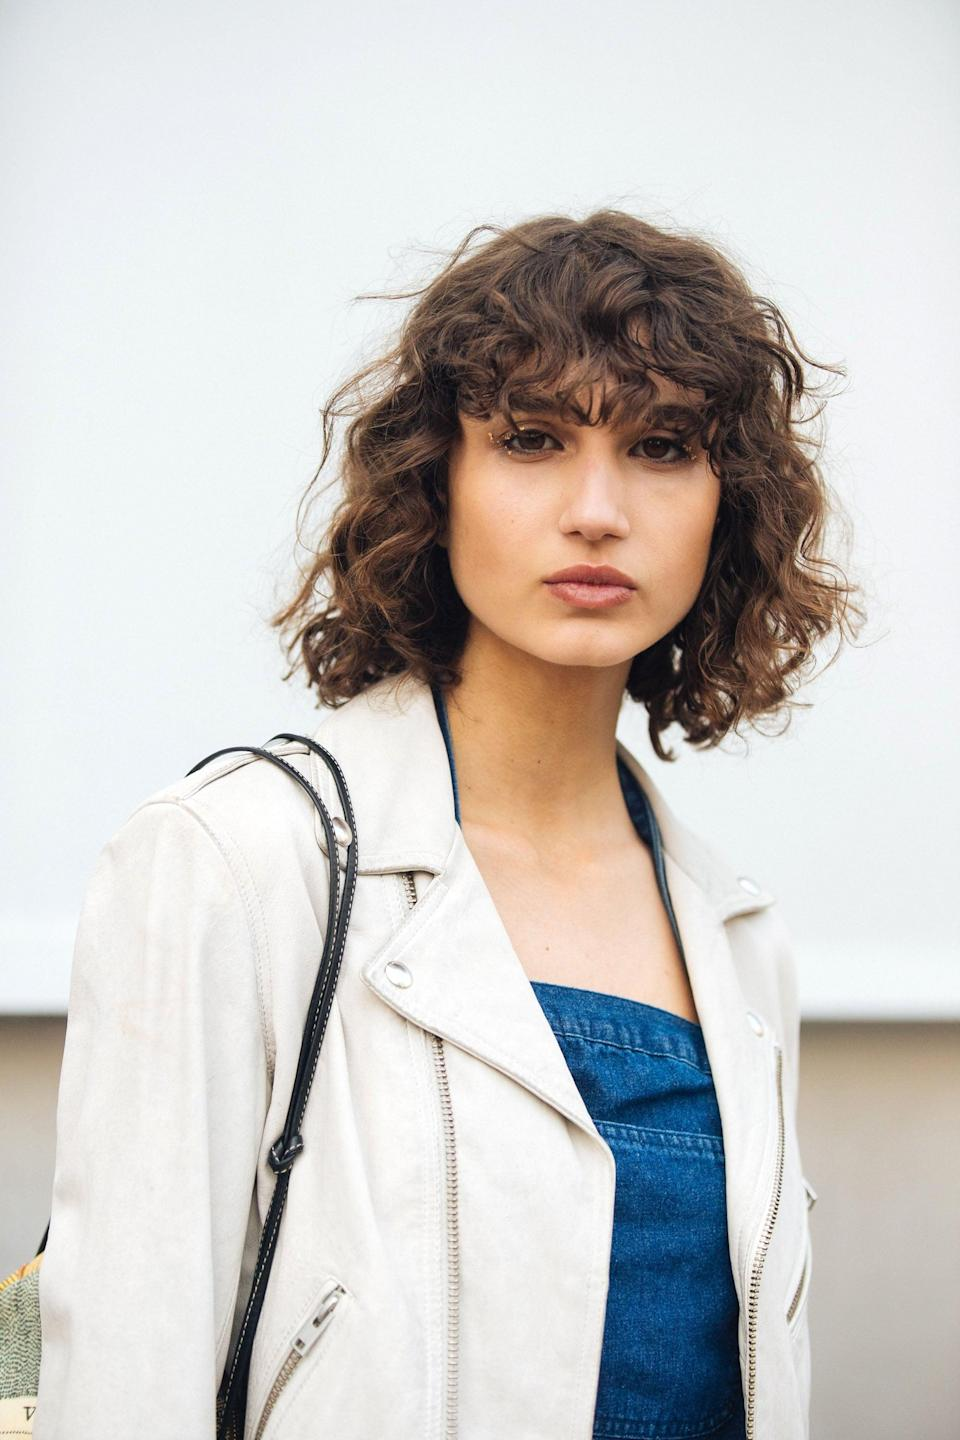 """<p>You're empathetic, creative, and romantic, meaning a retro-inspired shaggy haircut will fit your overall vibe perfectly. """"Shaggy layered looks are for the more fashion-forward and will offer style without the need for constant upkeep,"""" said <a href=""""https://www.instagram.com/josephmaine/"""" class=""""link rapid-noclick-resp"""" rel=""""nofollow noopener"""" target=""""_blank"""" data-ylk=""""slk:Joseph Maine"""">Joseph Maine</a>, celebrity hairstylist and cofounder of <a href=""""https://shoptrademarkbeauty.com/"""" class=""""link rapid-noclick-resp"""" rel=""""nofollow noopener"""" target=""""_blank"""" data-ylk=""""slk:Trademark Beauty"""">Trademark Beauty</a>.</p>"""